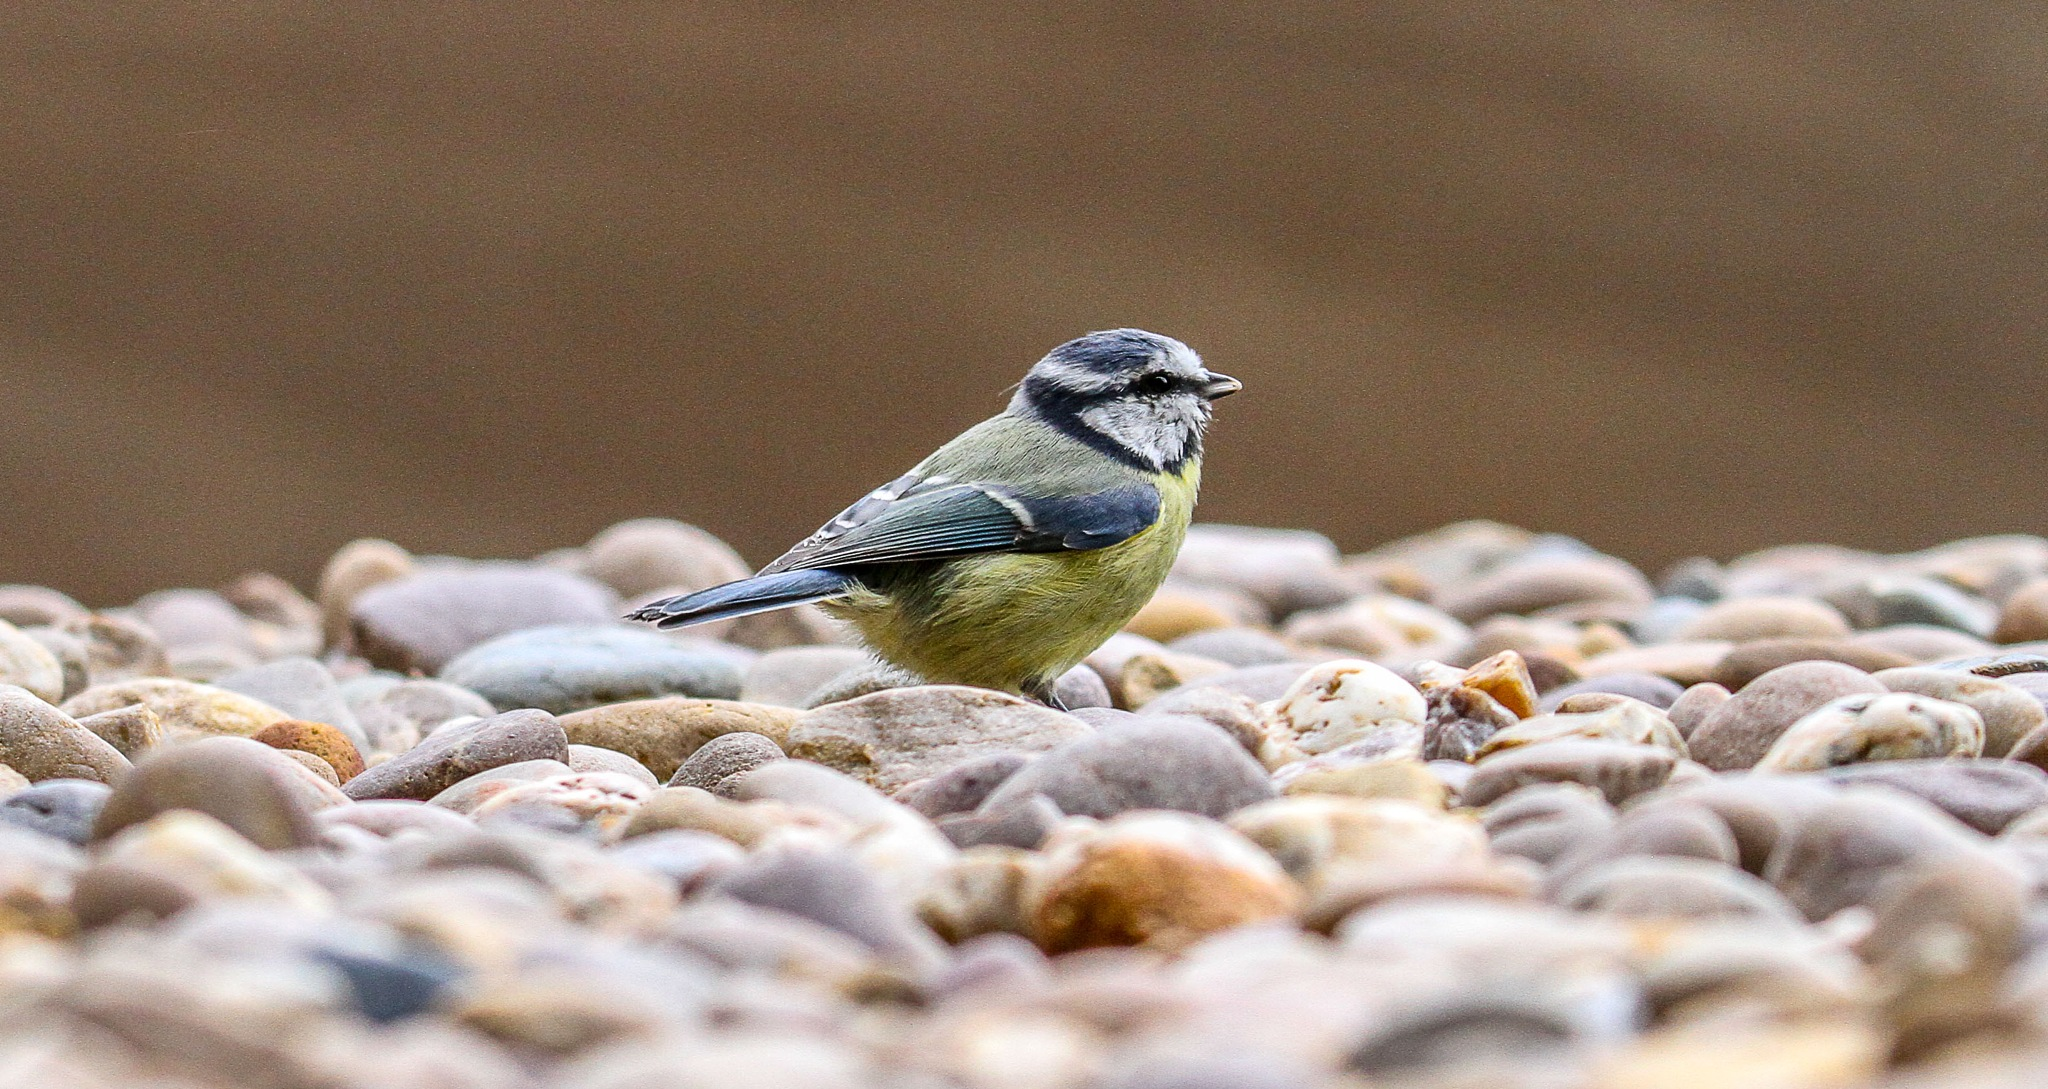 On the rocks by garry-chisholm1